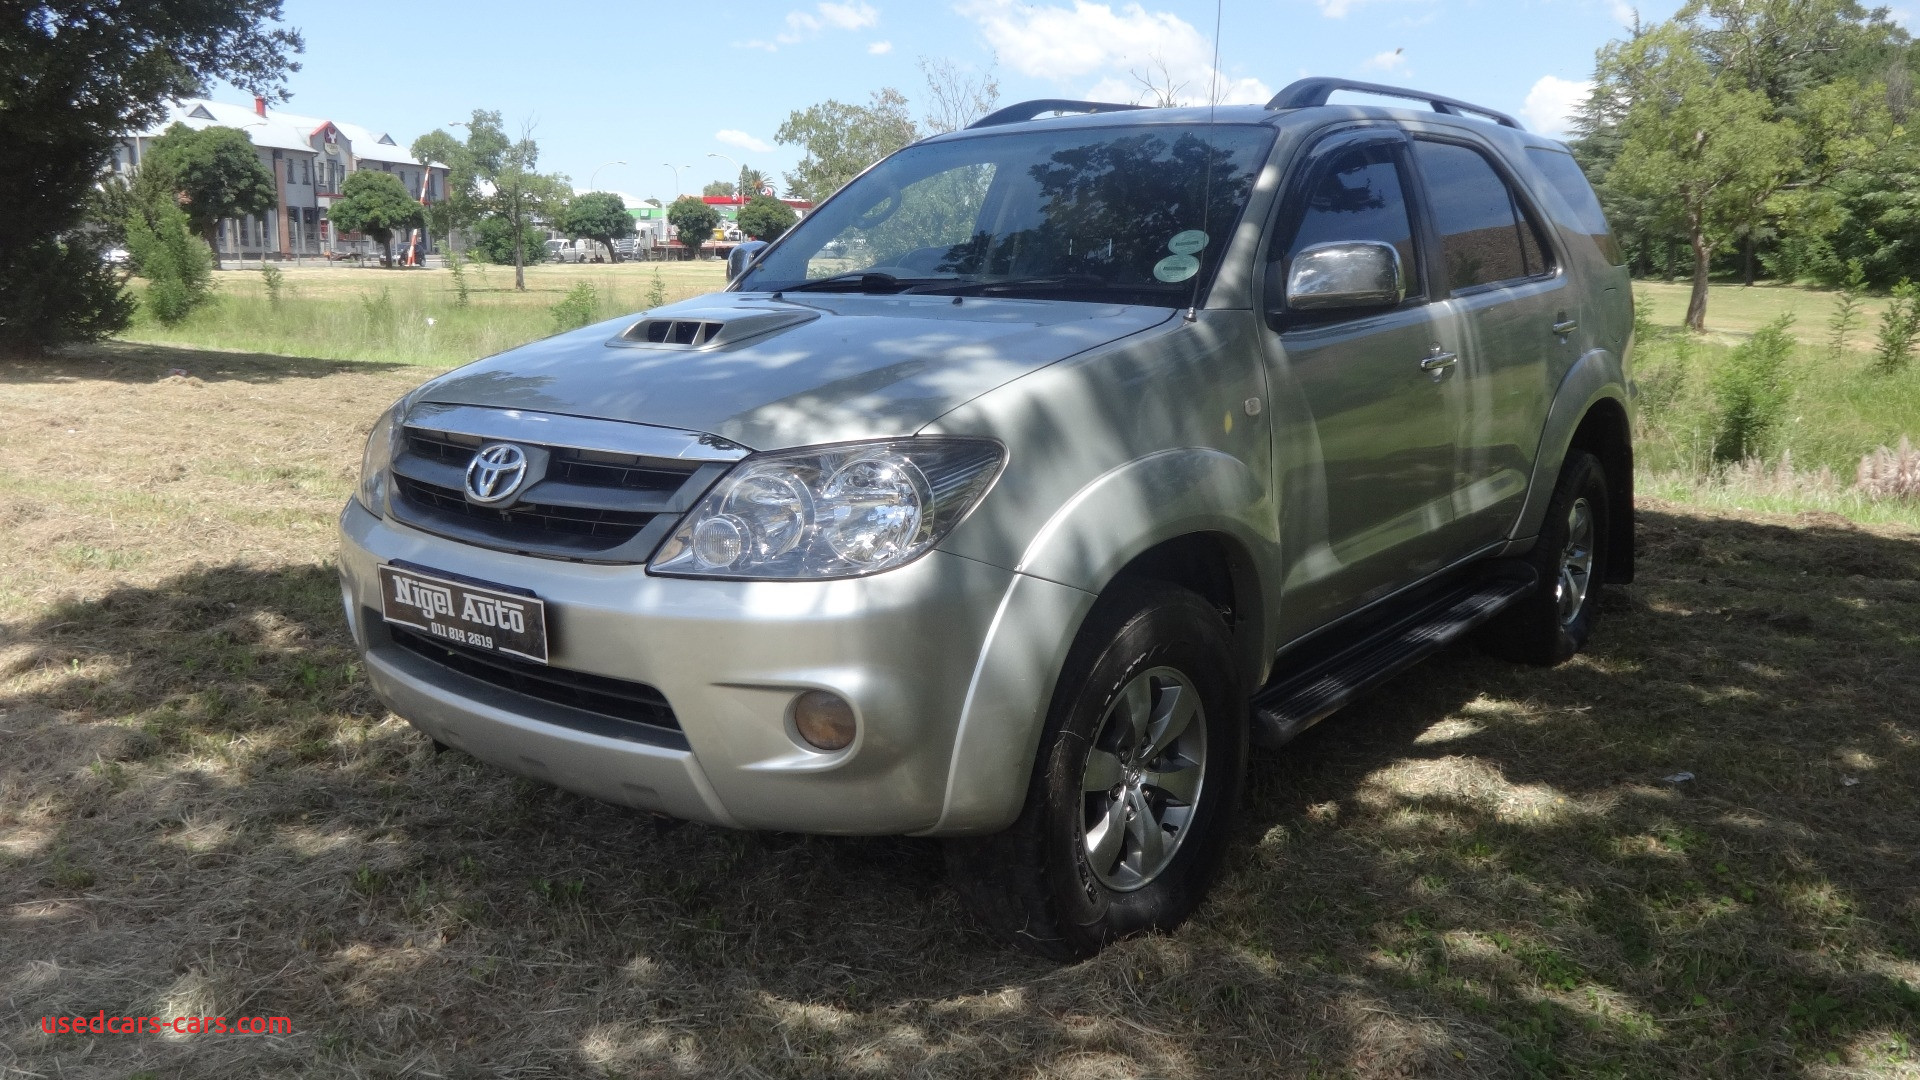 Used Cars for Sale Colorado Springs Awesome toyota fortuner fortuner 3 0d 4d 4x4 for Sale In Gauteng